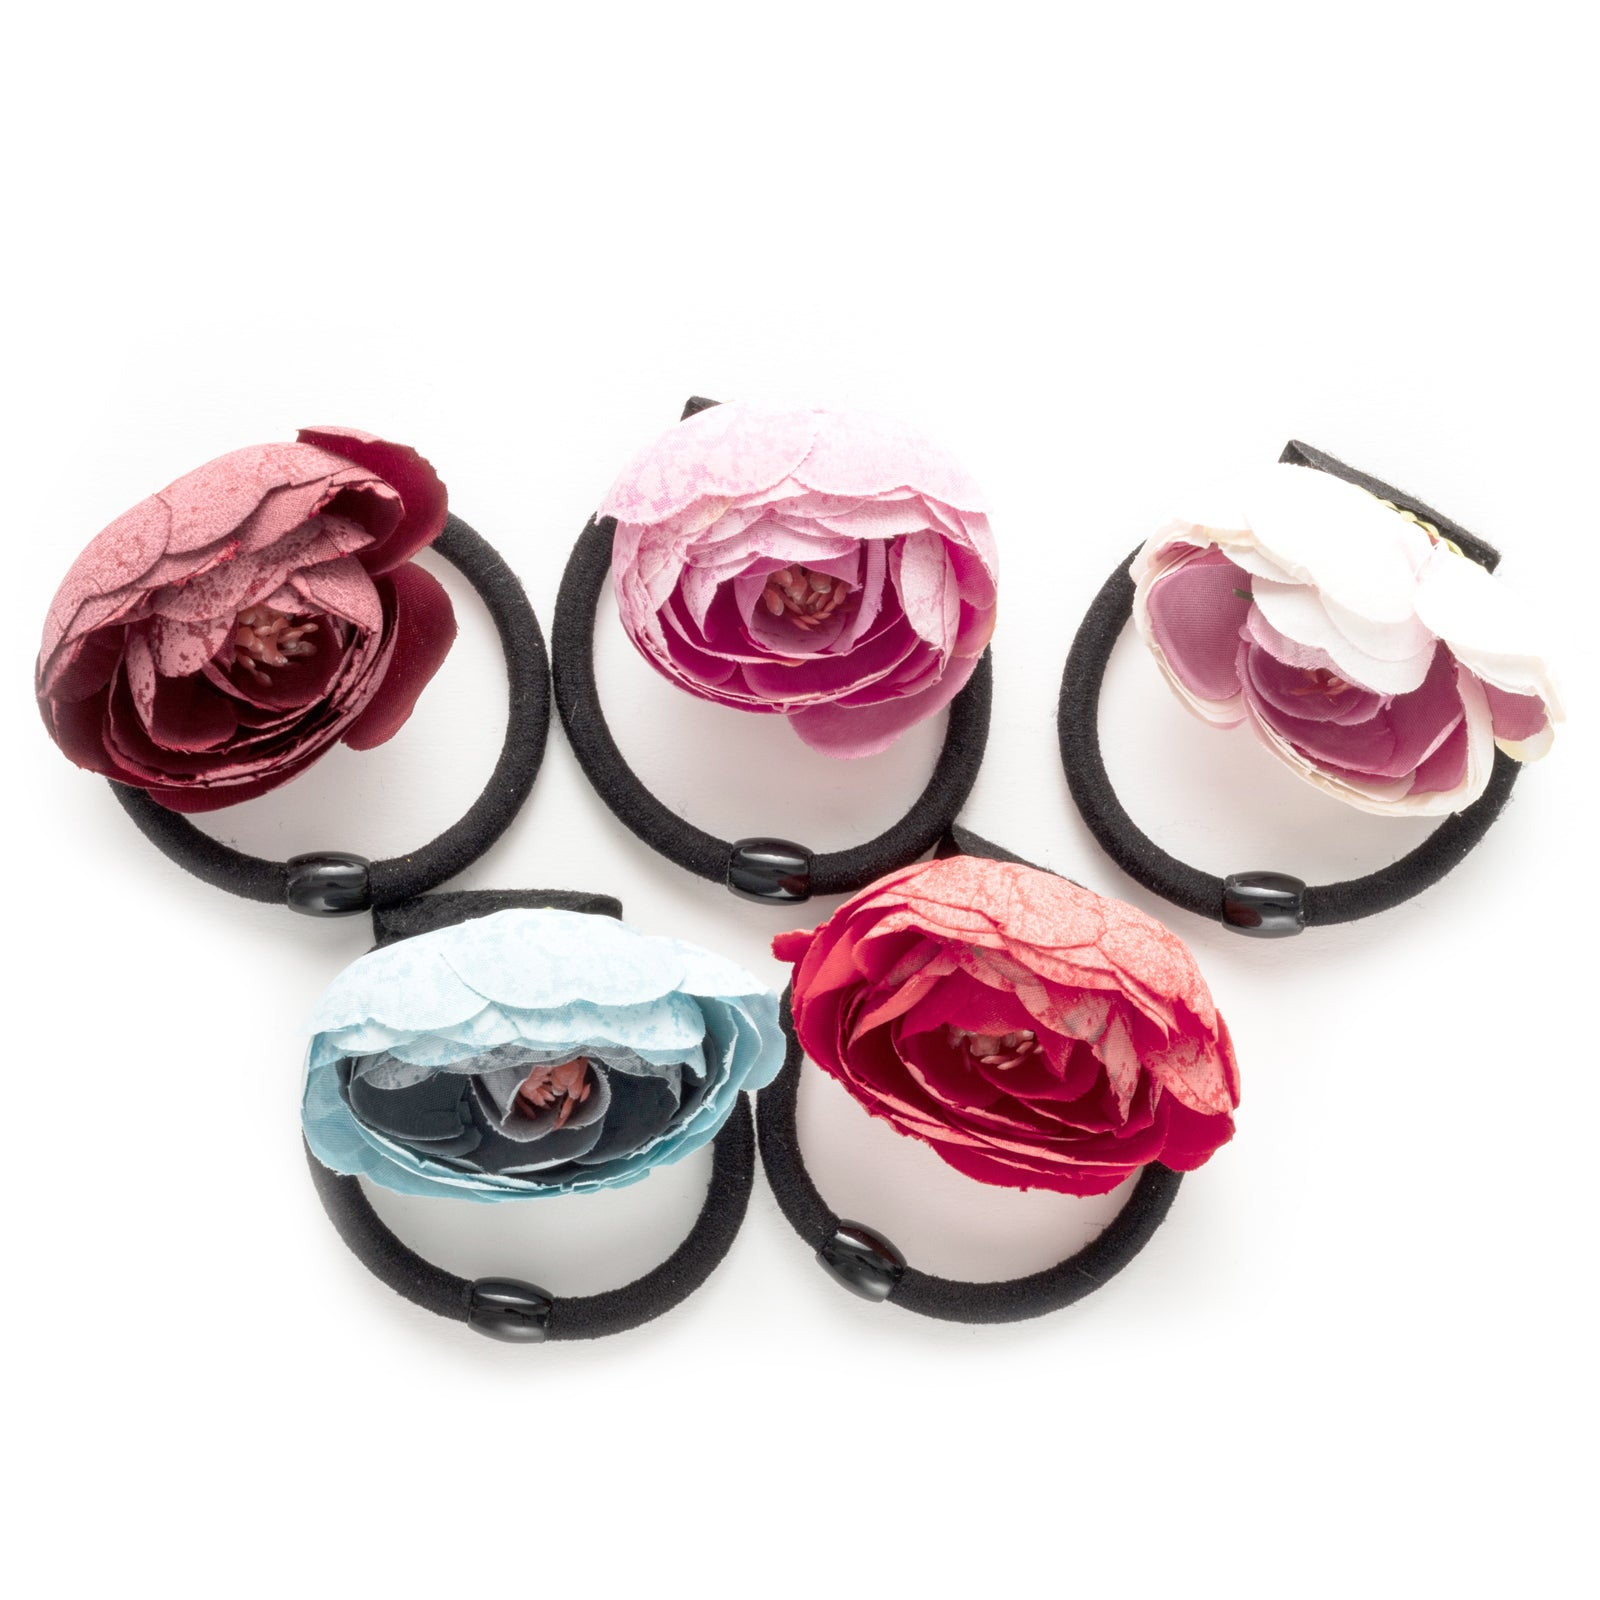 Flower Bud hair tie